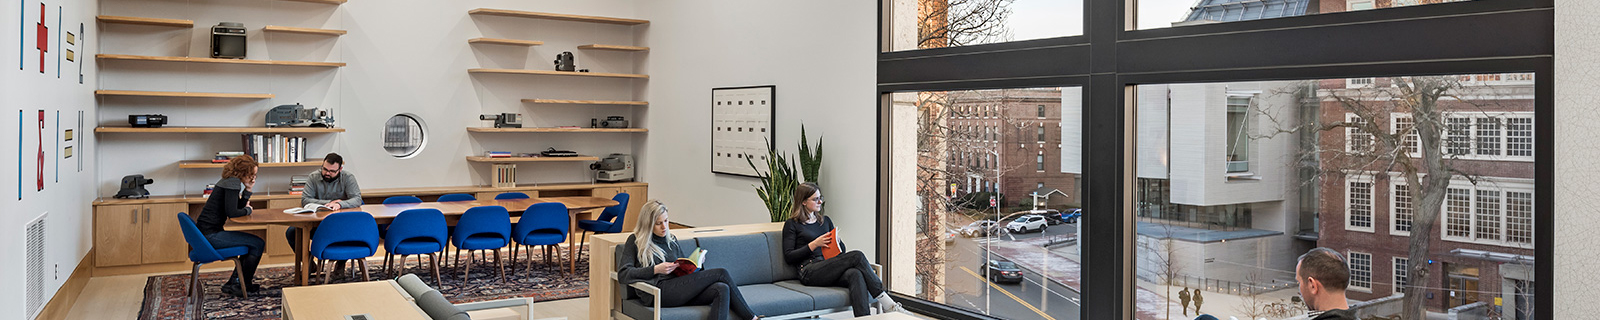 Living Room in 485 Broadway, students reading and conversing